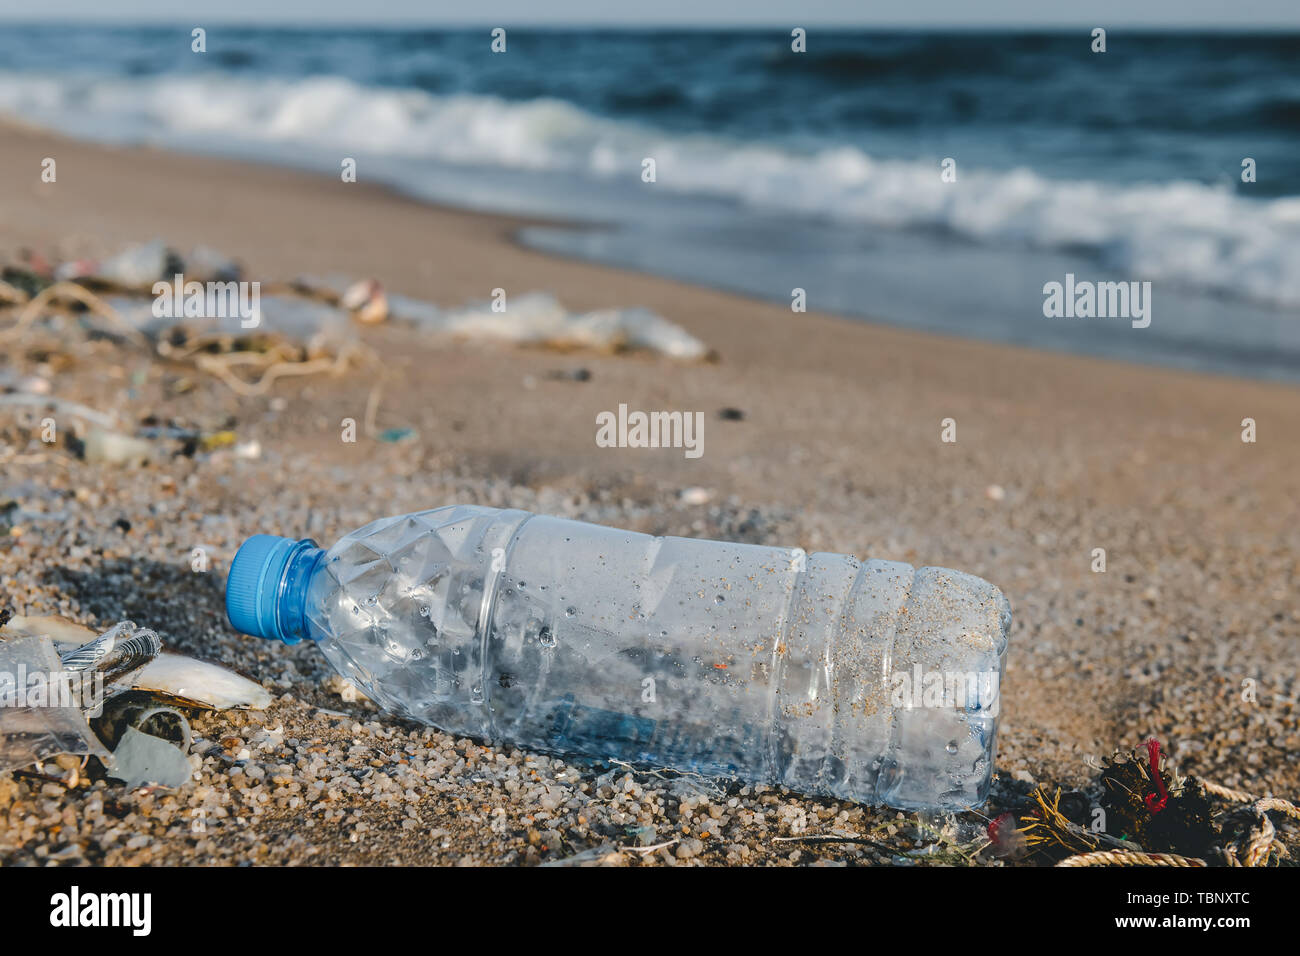 Plastic bottle garbage on the beach in pollution sea scape  environment with sun lighting. - Stock Image